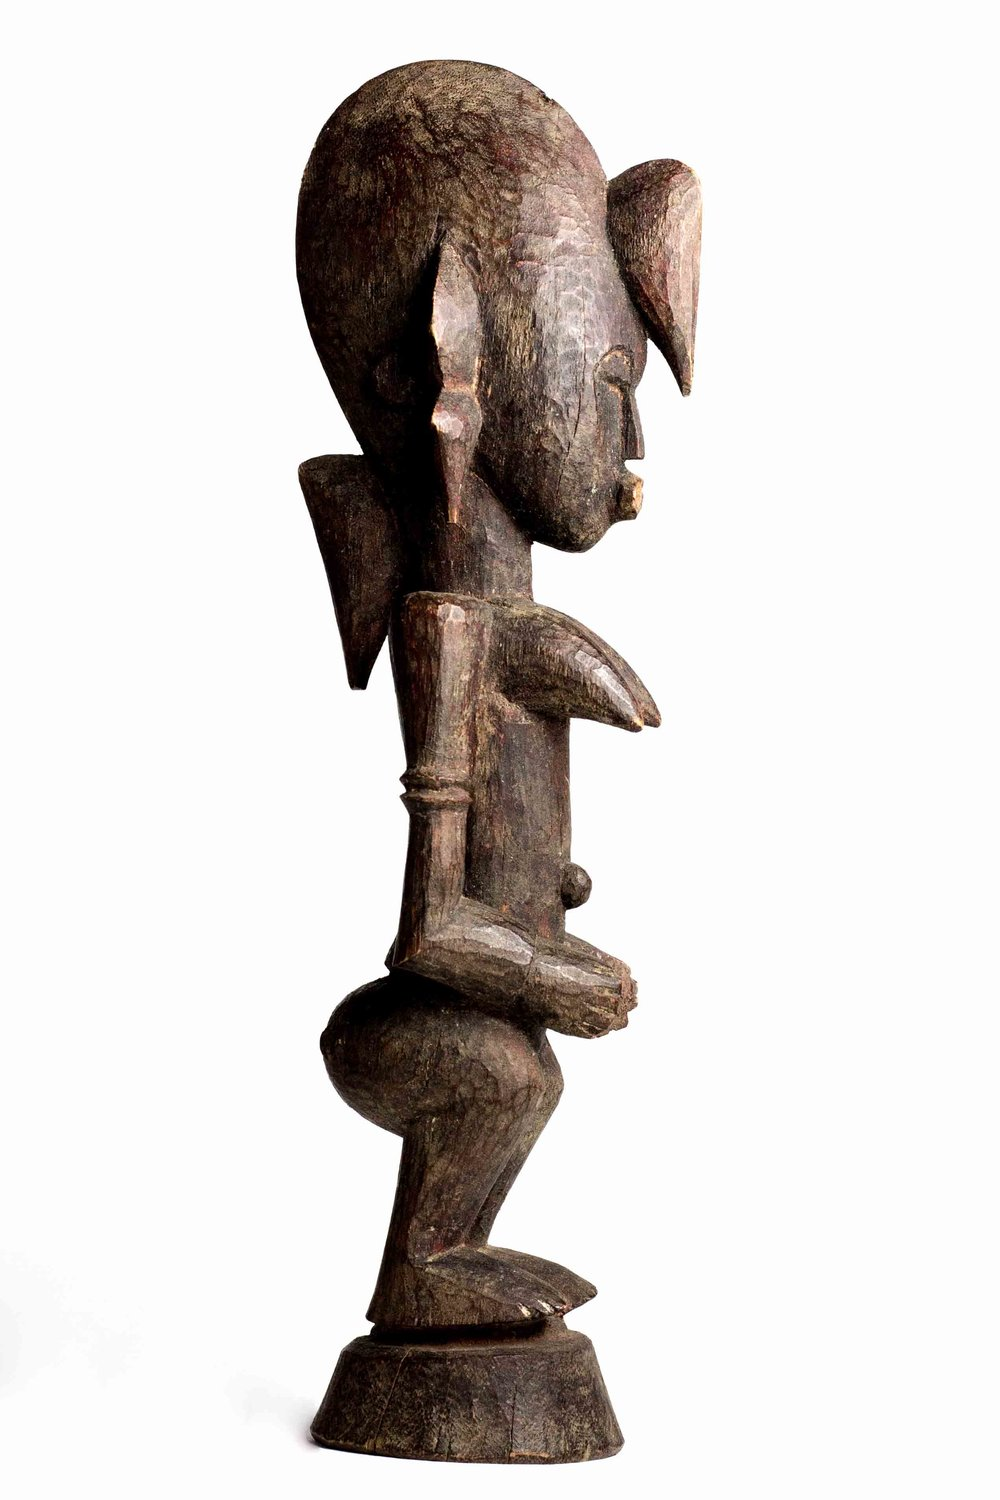 - Female figure collected 1976 in Kounoumon (Region of Boundiali, Côte d'Ivoire). It was carved 1970 by Kolotielema Dagnogo. The owner was a Balafon player Sedion Chomman. Wood with red coloring, remains of Kola nut offering on the mouth, H. 26 cm